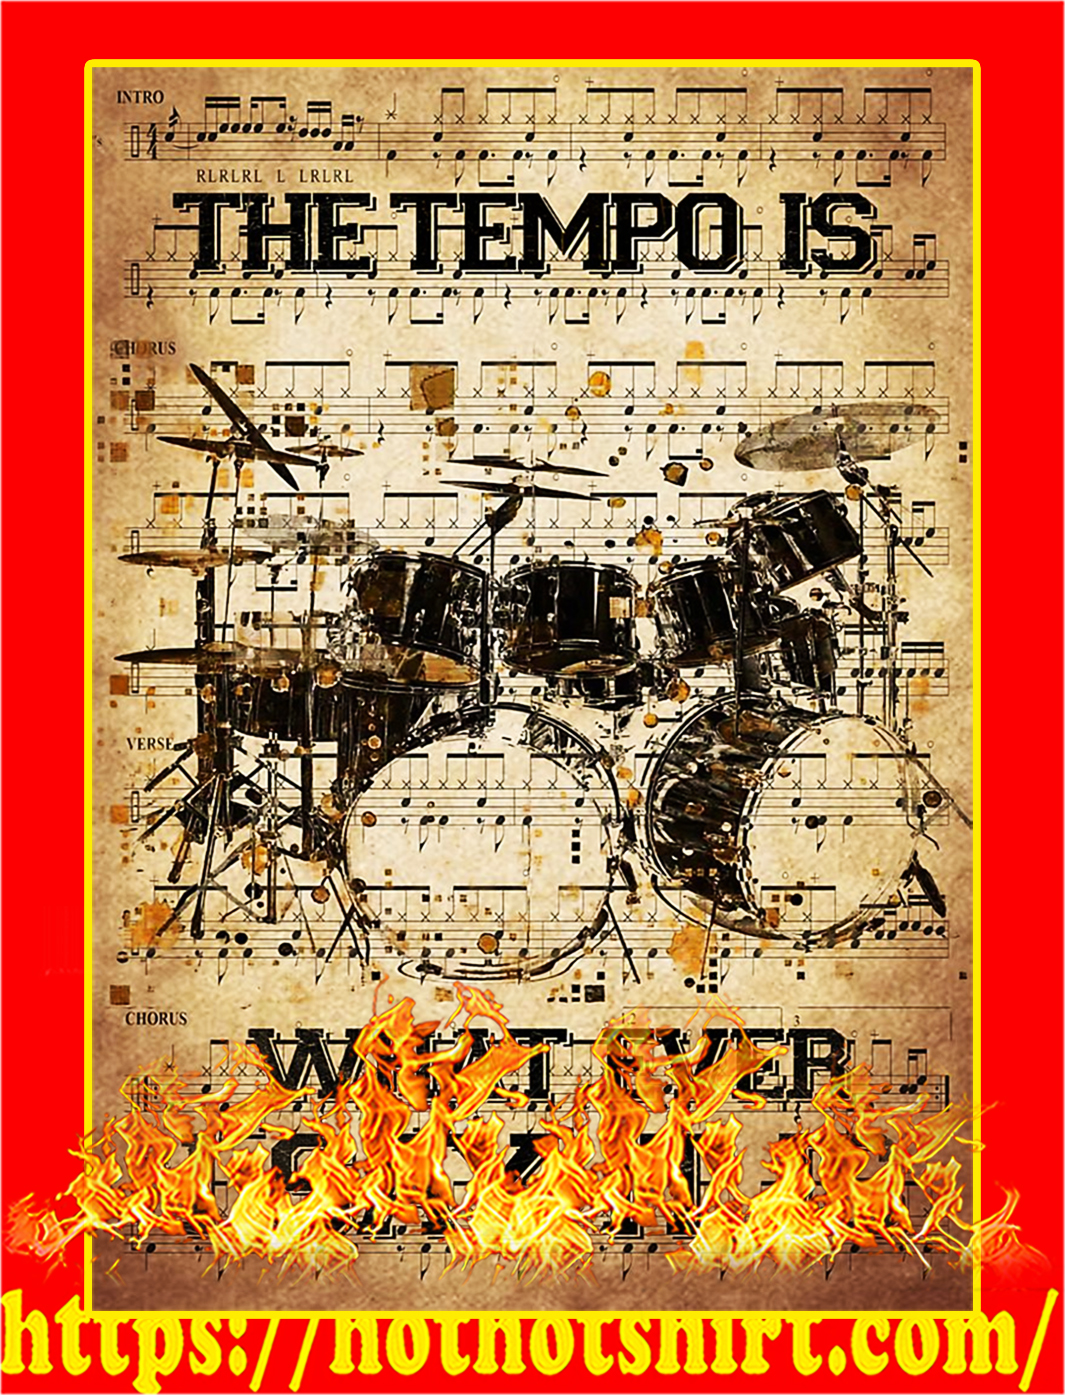 The tempo is what ever i say it is poster - A3